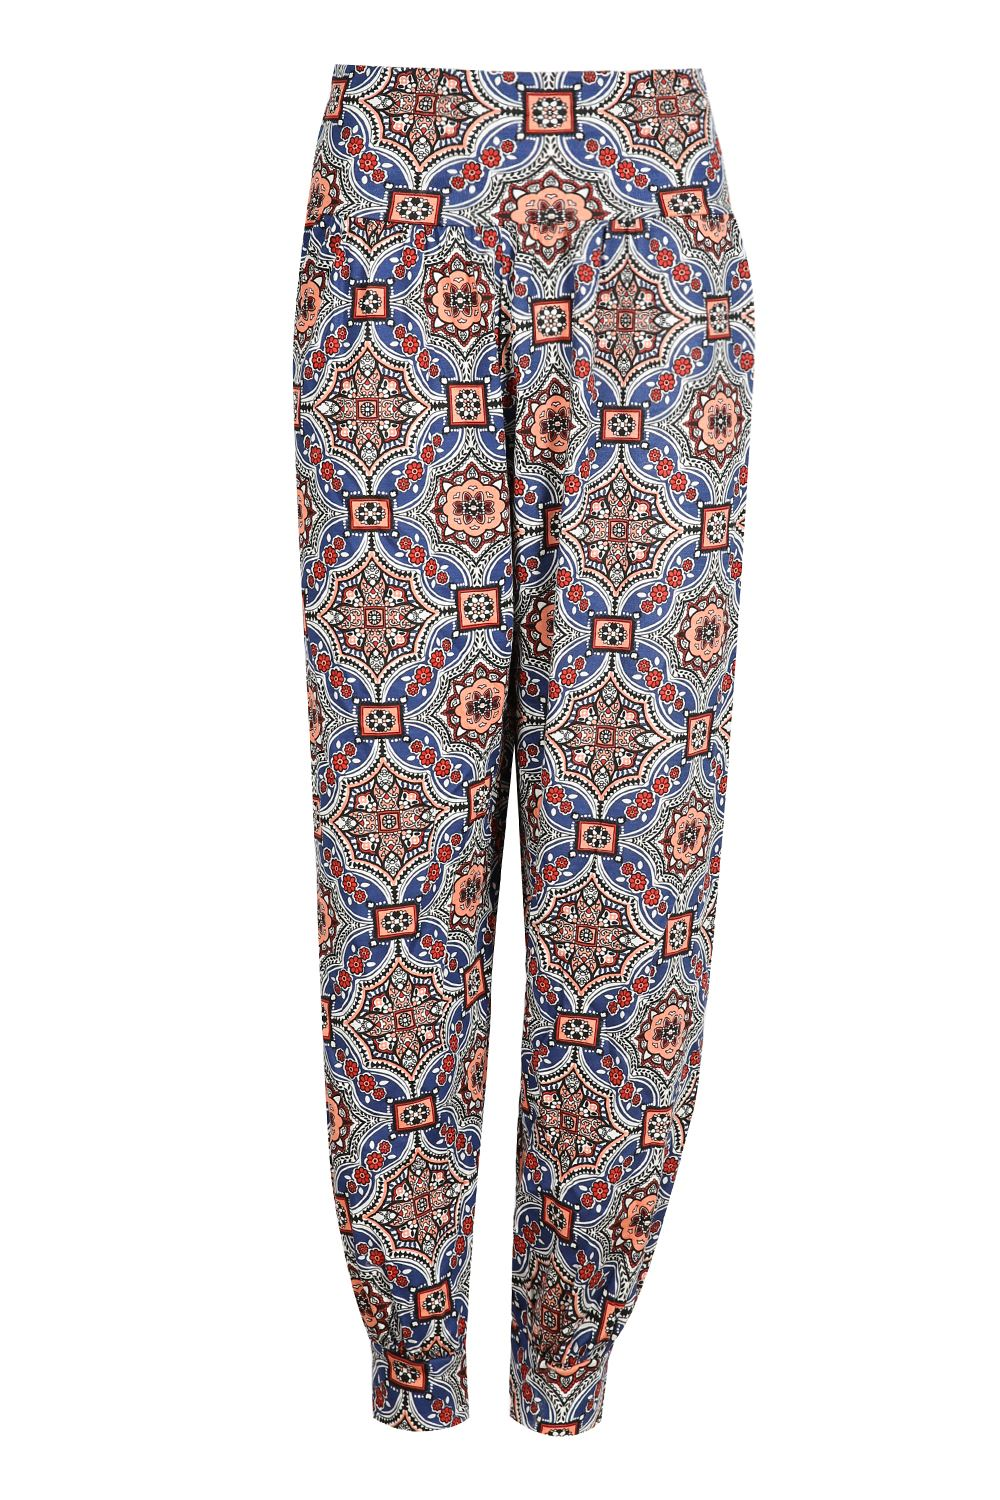 Perfect New Womens Ali Baba Trousers Ladies Harem Pants Floral Printed Bottoms Leggin